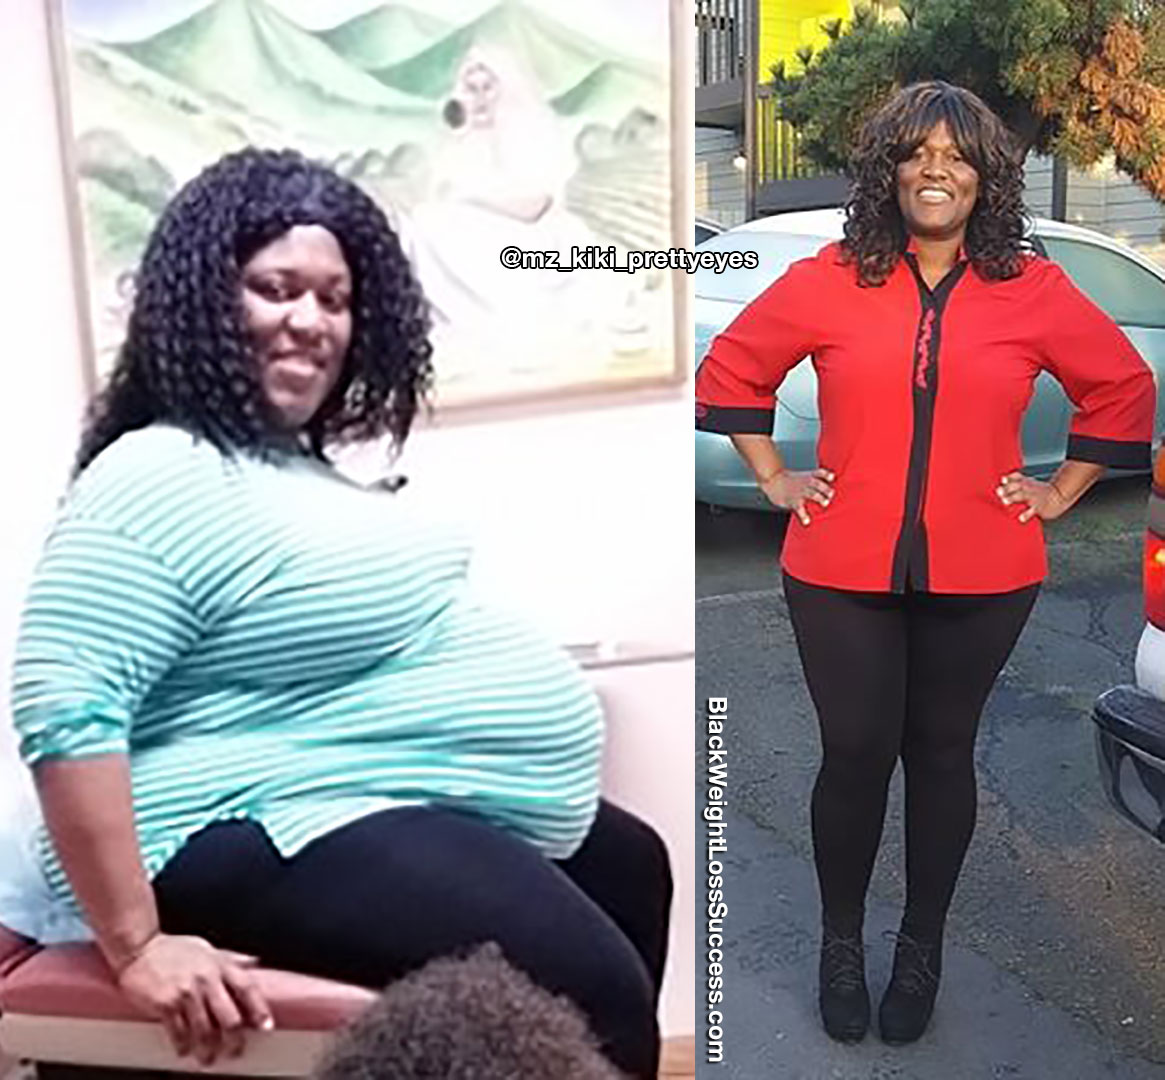 Yakila lost 150 pounds